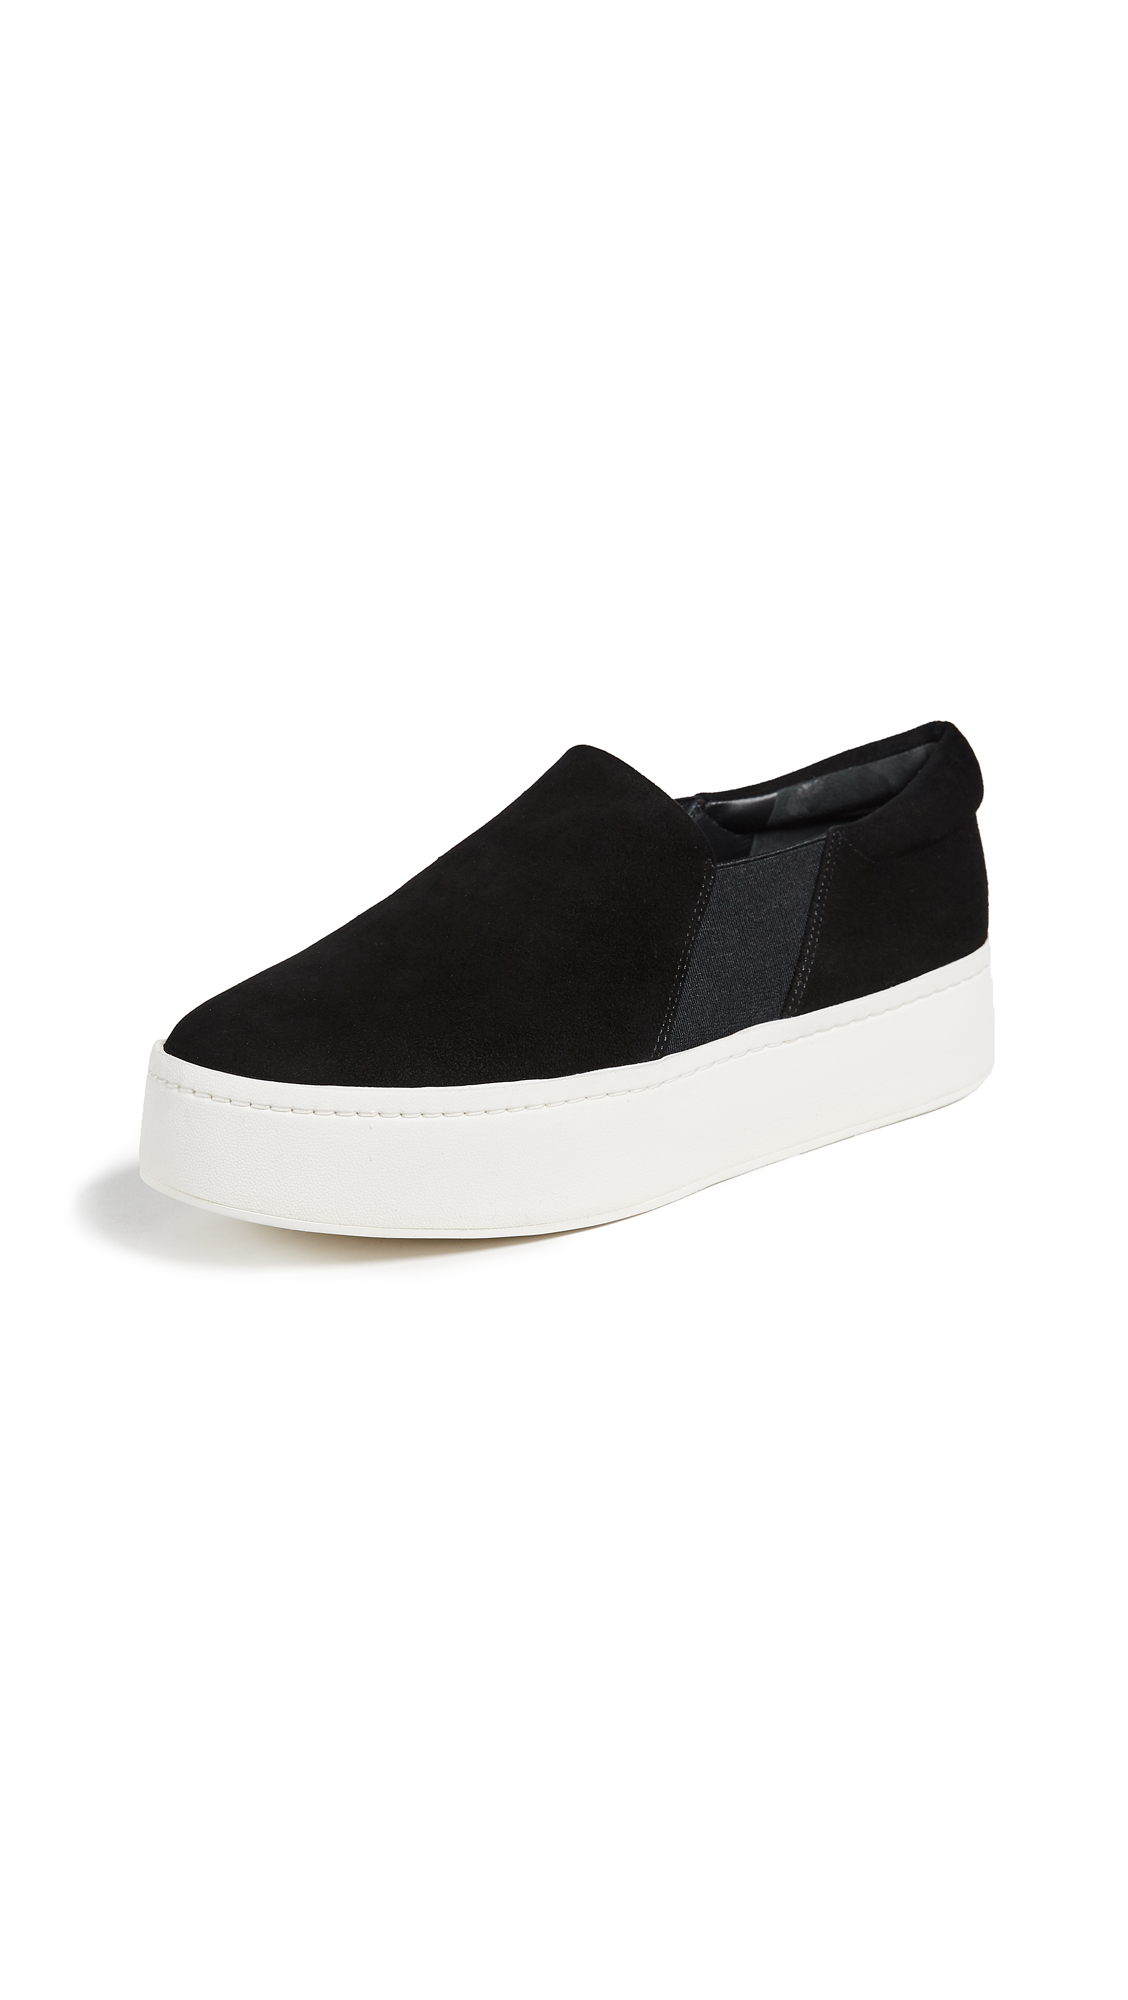 Vince Warren Platform Sneakers - Black